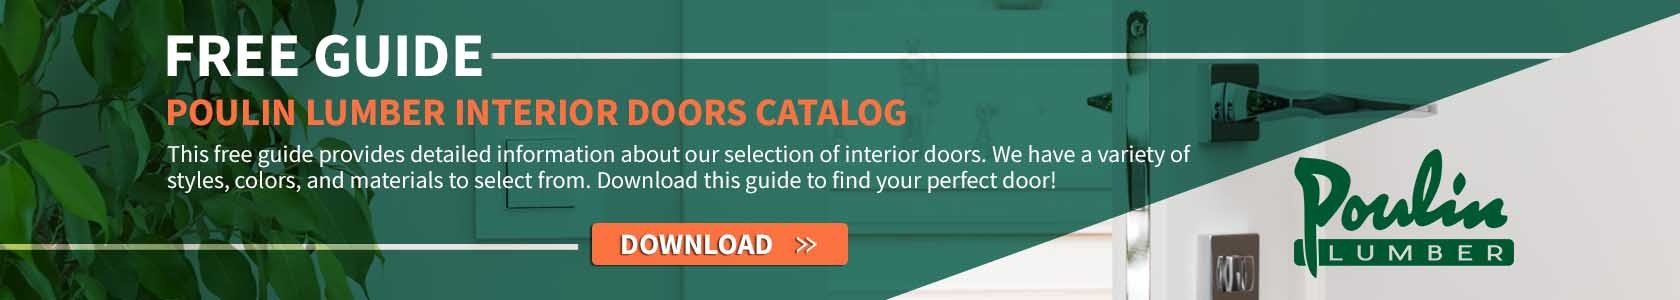 Download button for a free guide on interior doors